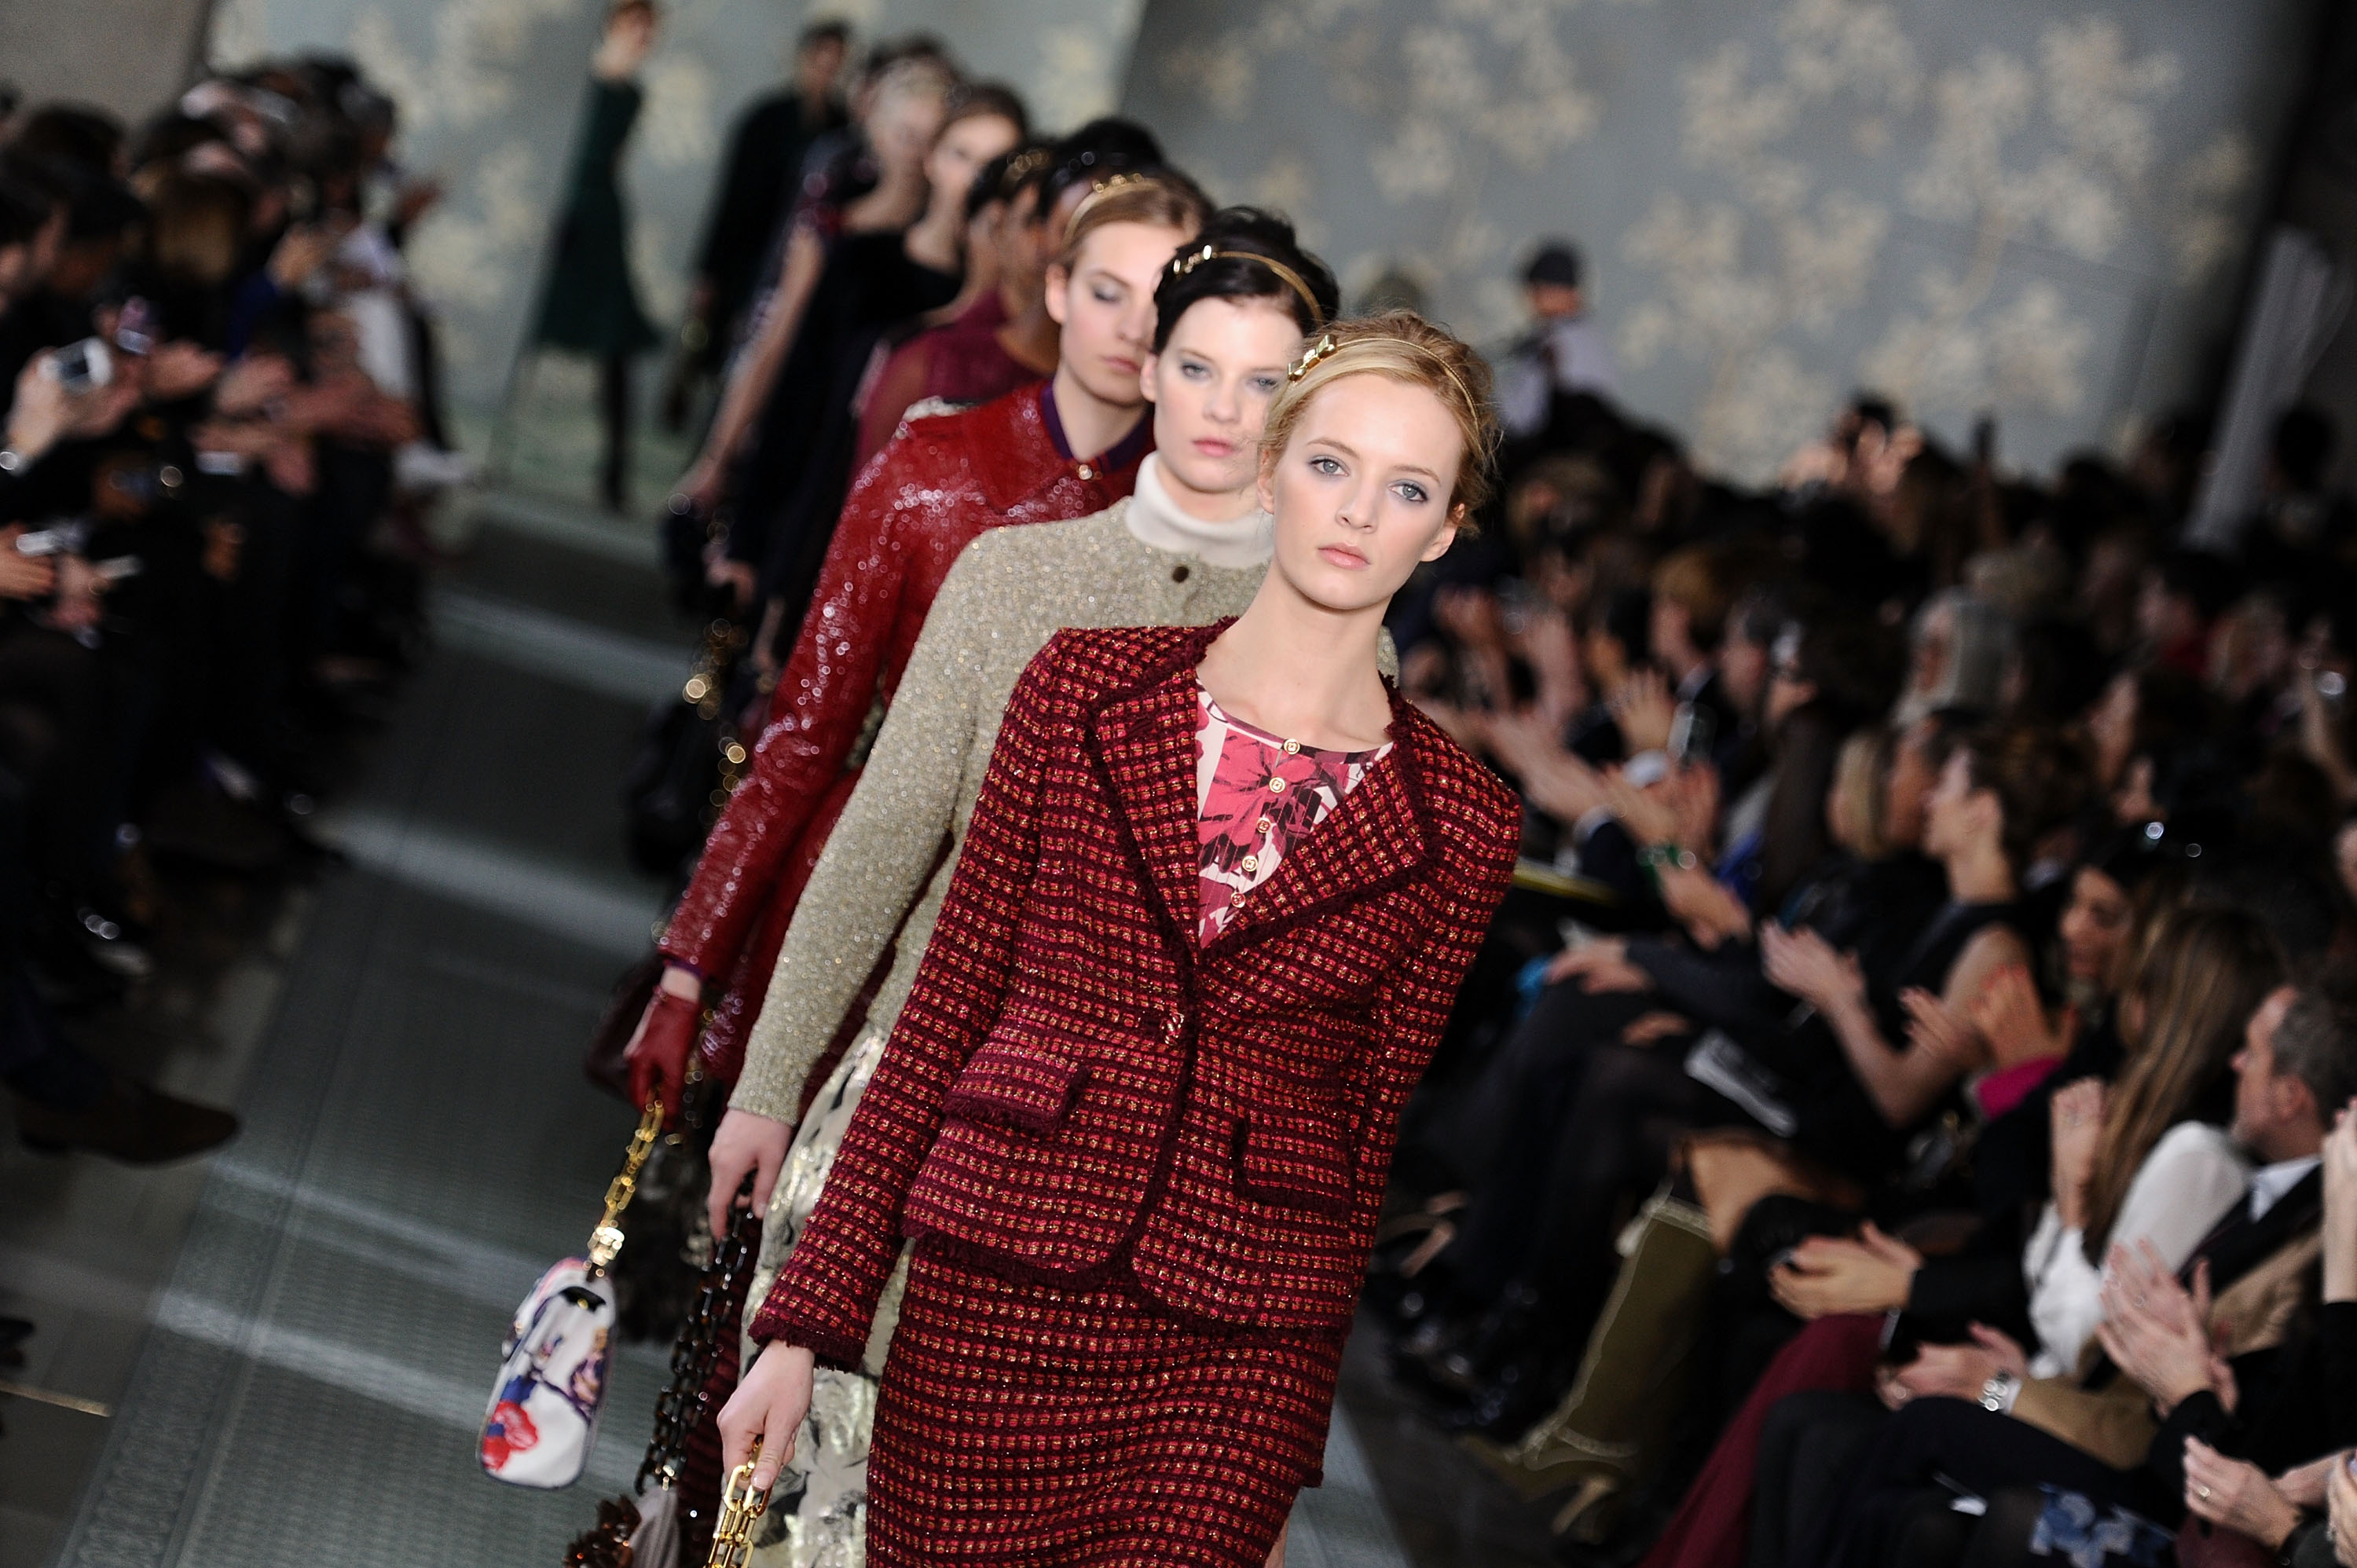 Американський модельєр Торі Барч (Tory Burch) на Mercedes-Benz Fashion Week. Фото: Mike Coppola / Getty Images